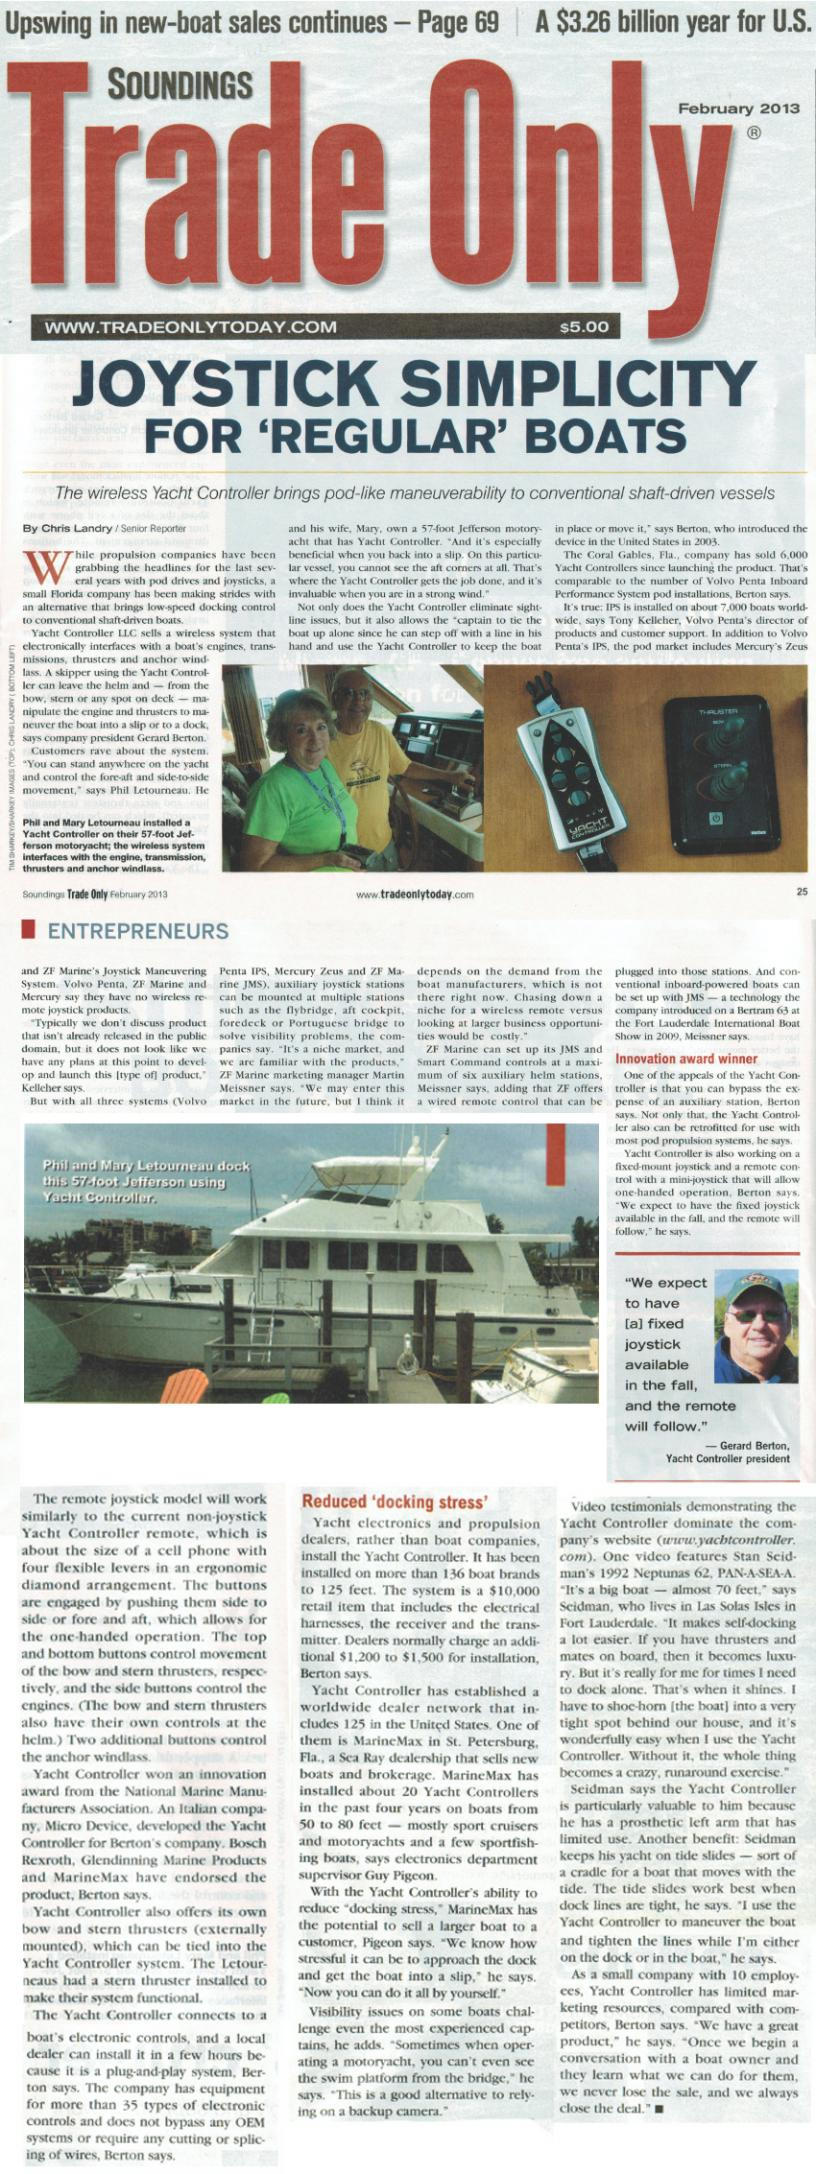 Trade Only - Article on Yacht Controller